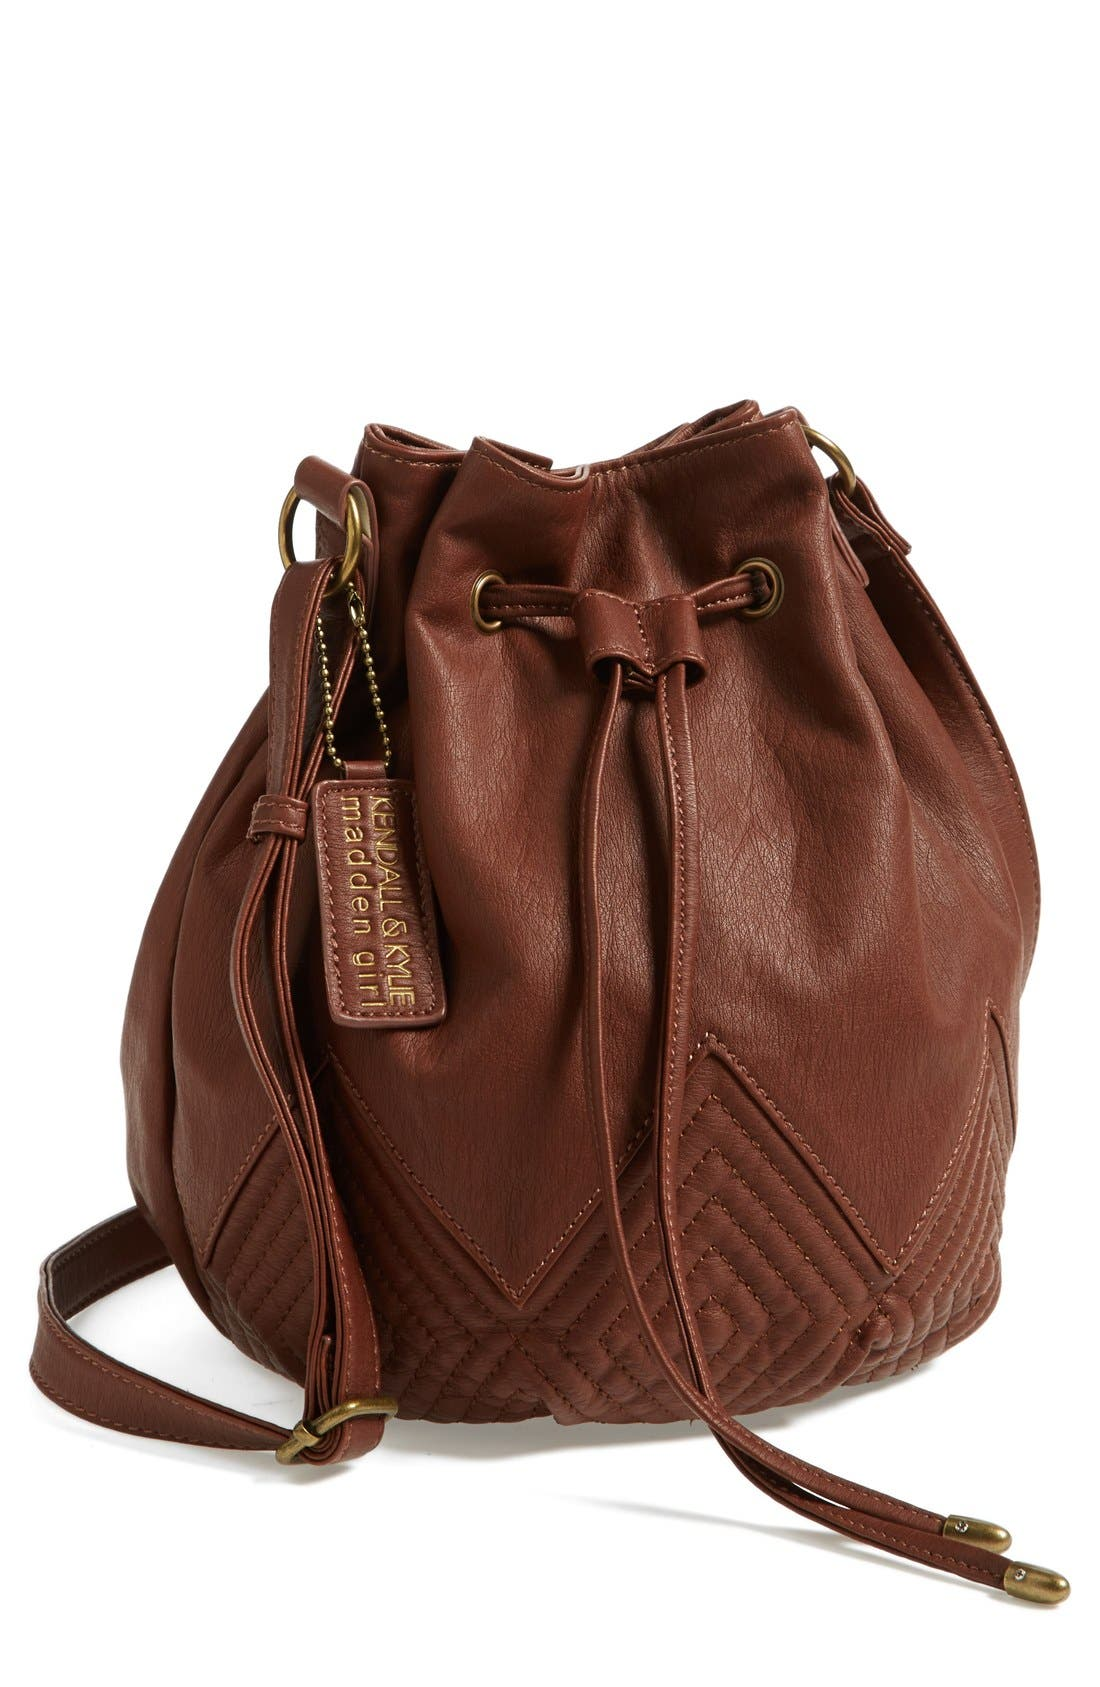 Alternate Image 1 Selected - KENDALL + KYLIE Madden Girl Quilted Faux Leather Bucket Bag (Juniors)